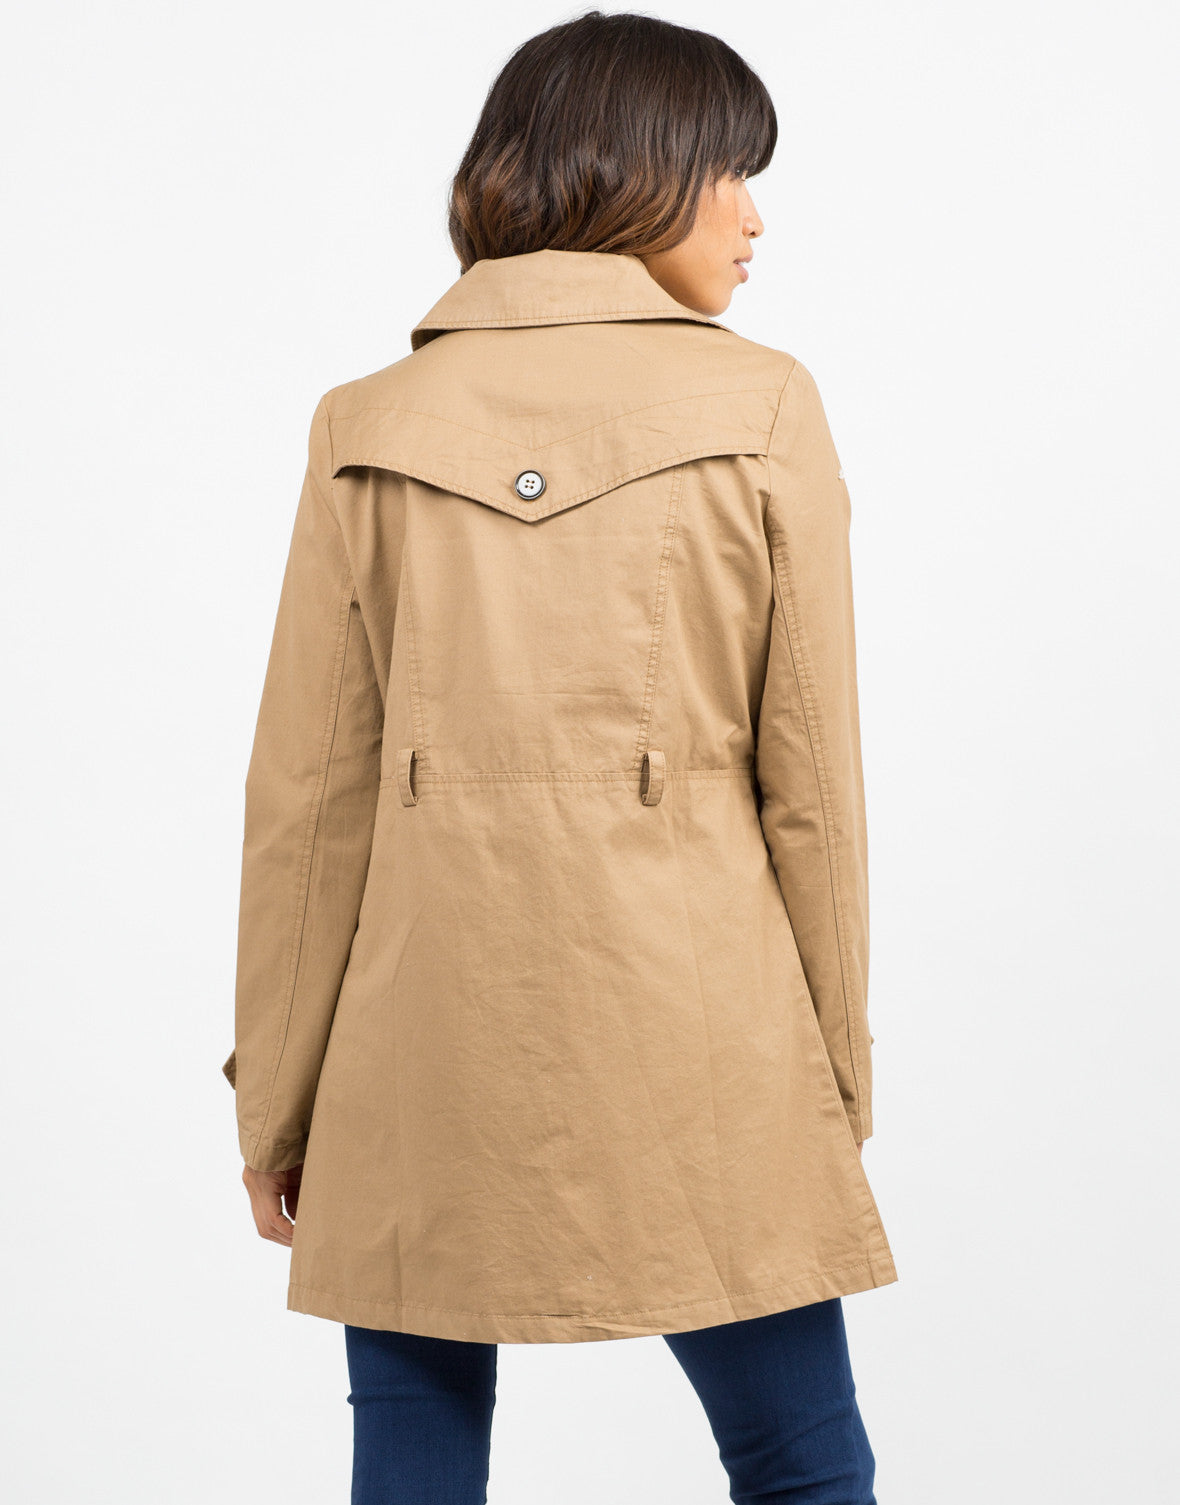 Back View of Button Front Belted Trench Coat